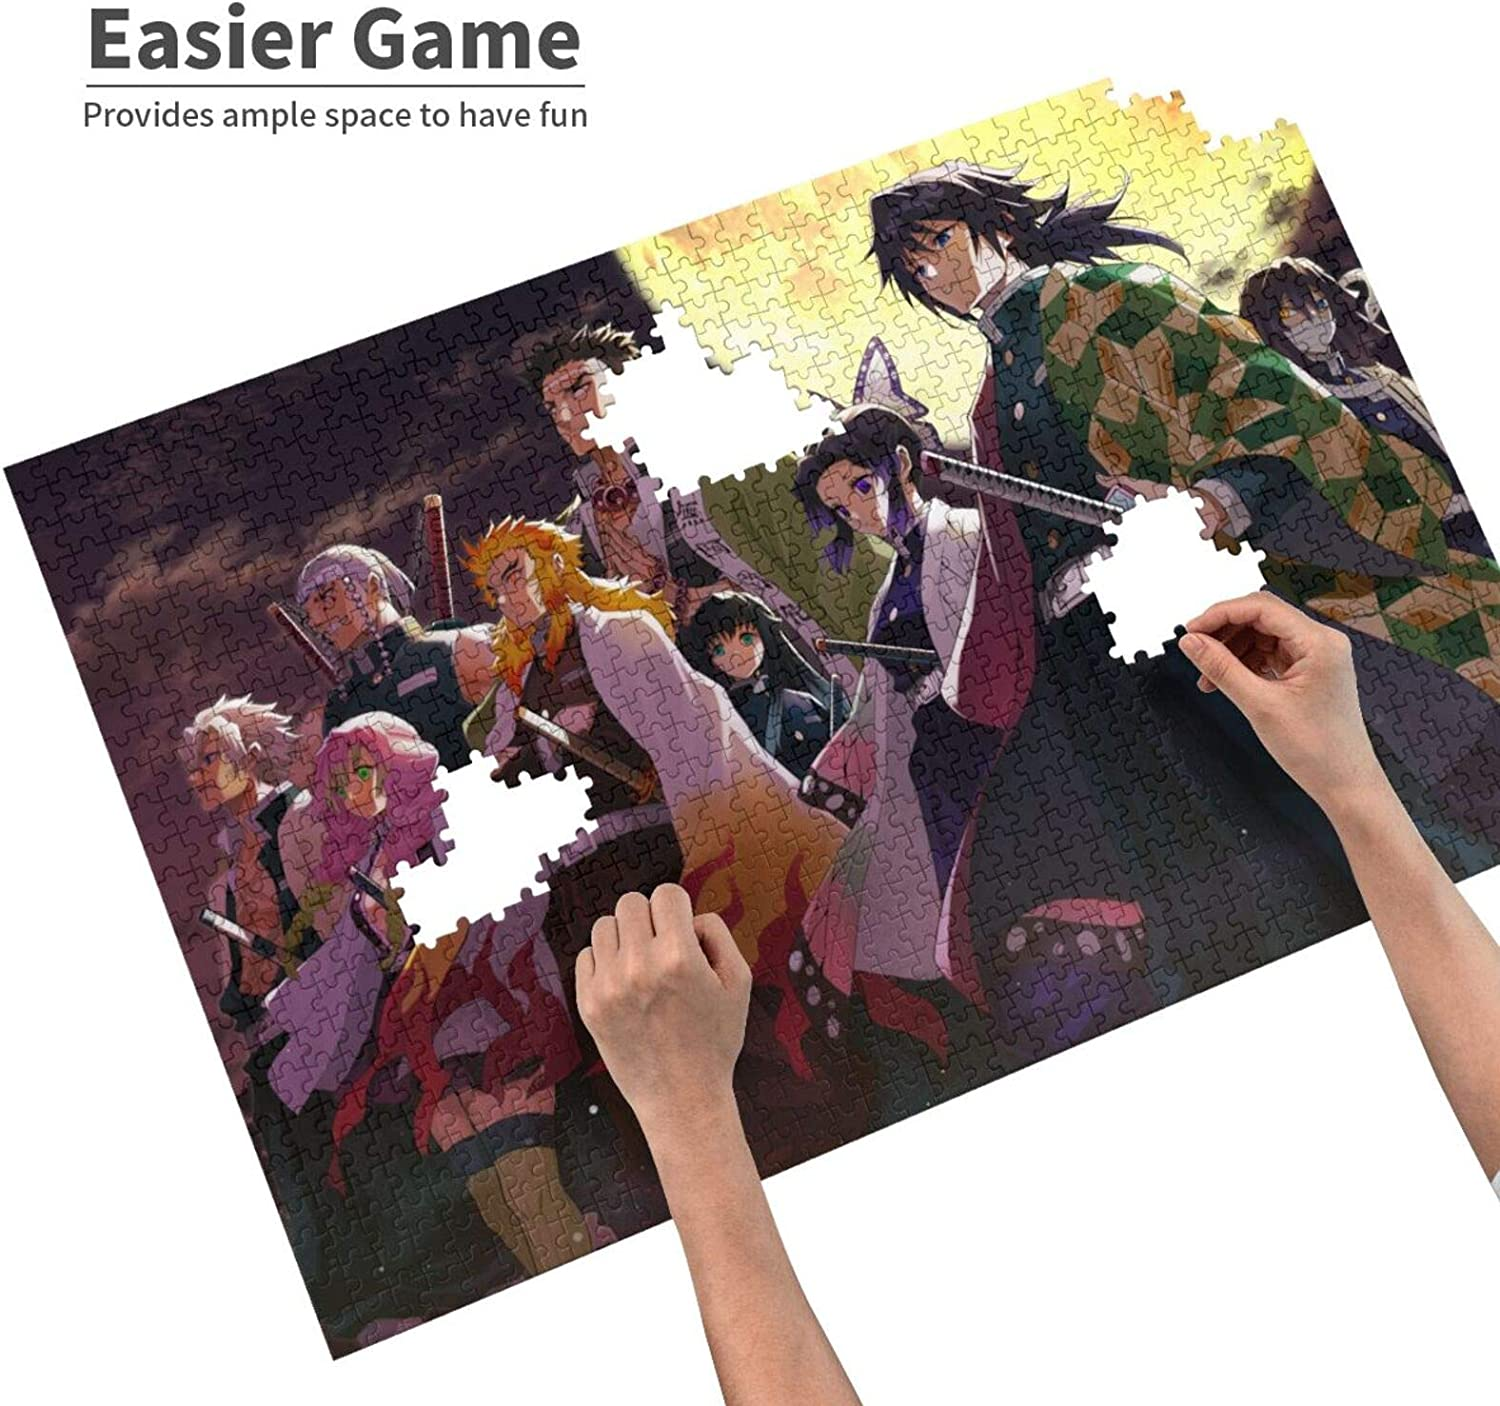 Anime Puzzles for Adults 1000 Pieces Demon/_ S/_Layer Jigsaw Puzzles Birthday Gift Home Decor for Teens Kids 29.5x19.7 in